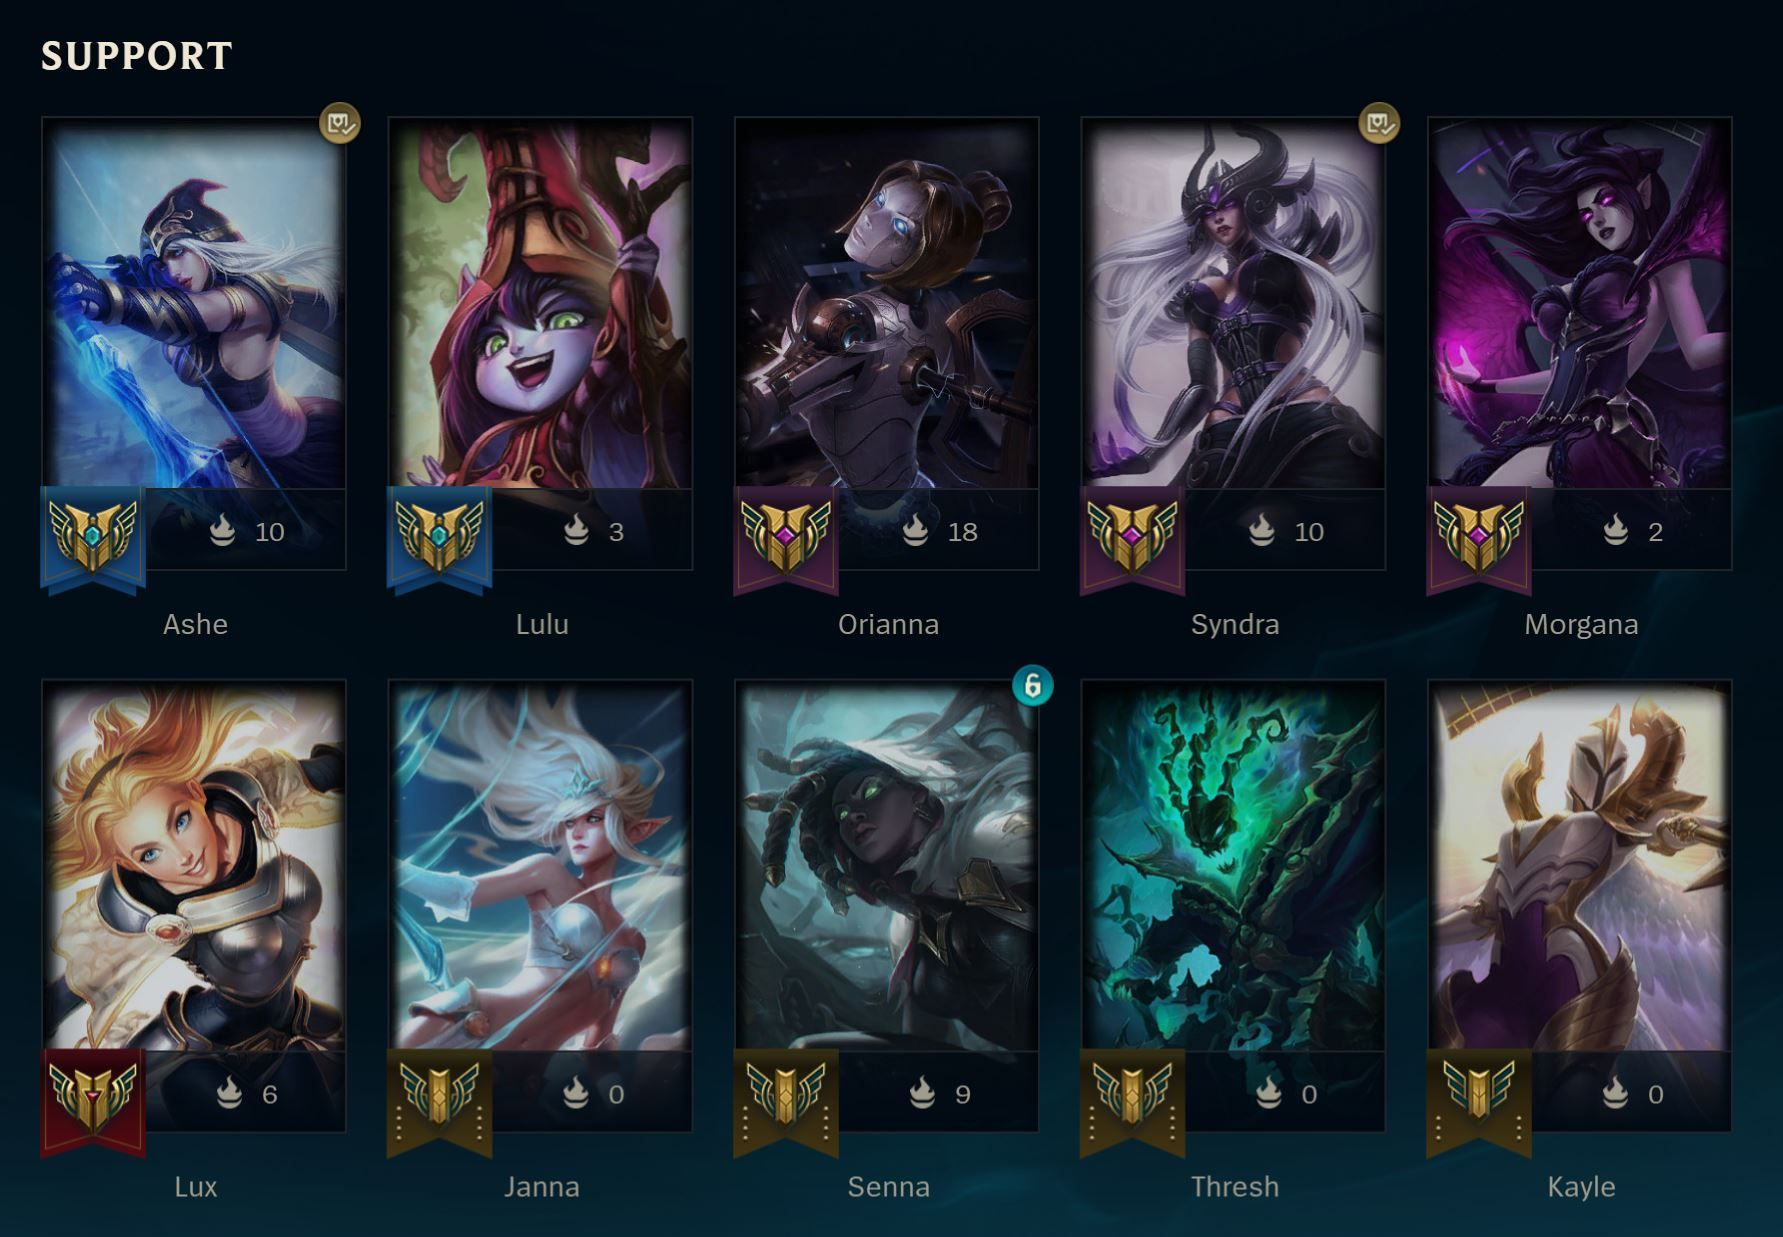 Support Champions in League of Legends.